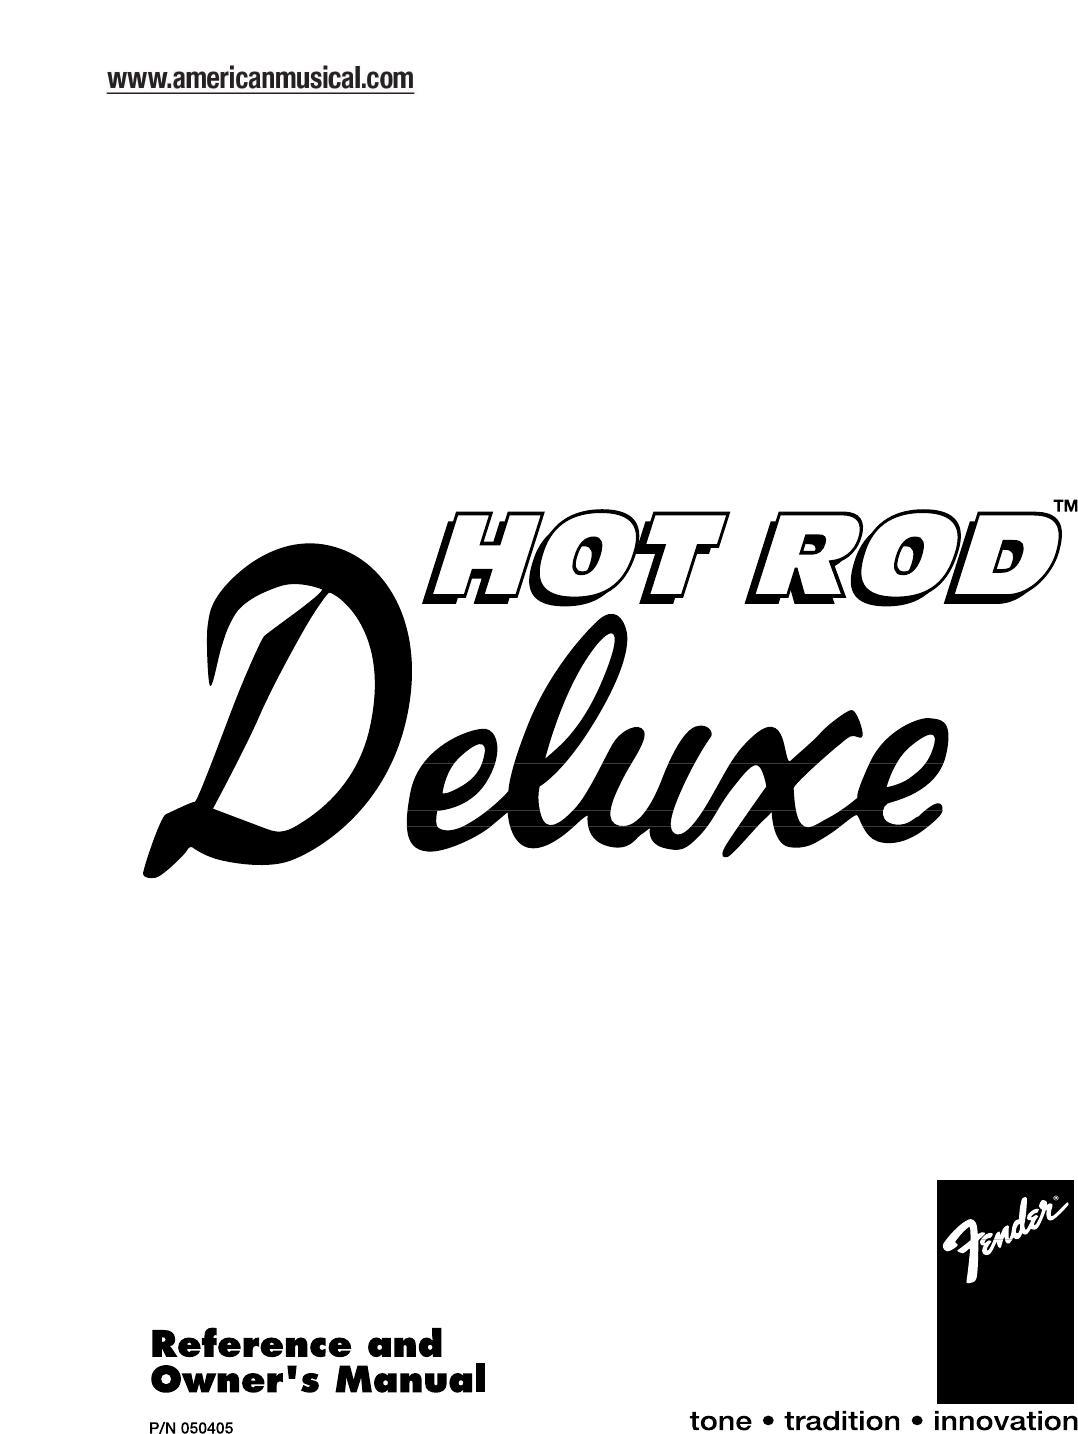 fender hot rod deluxe pr 246 reference and owners manual download rh rsmanuals com fender hot rod deluxe 3 user manual fender hot rod deluxe iii owners manual